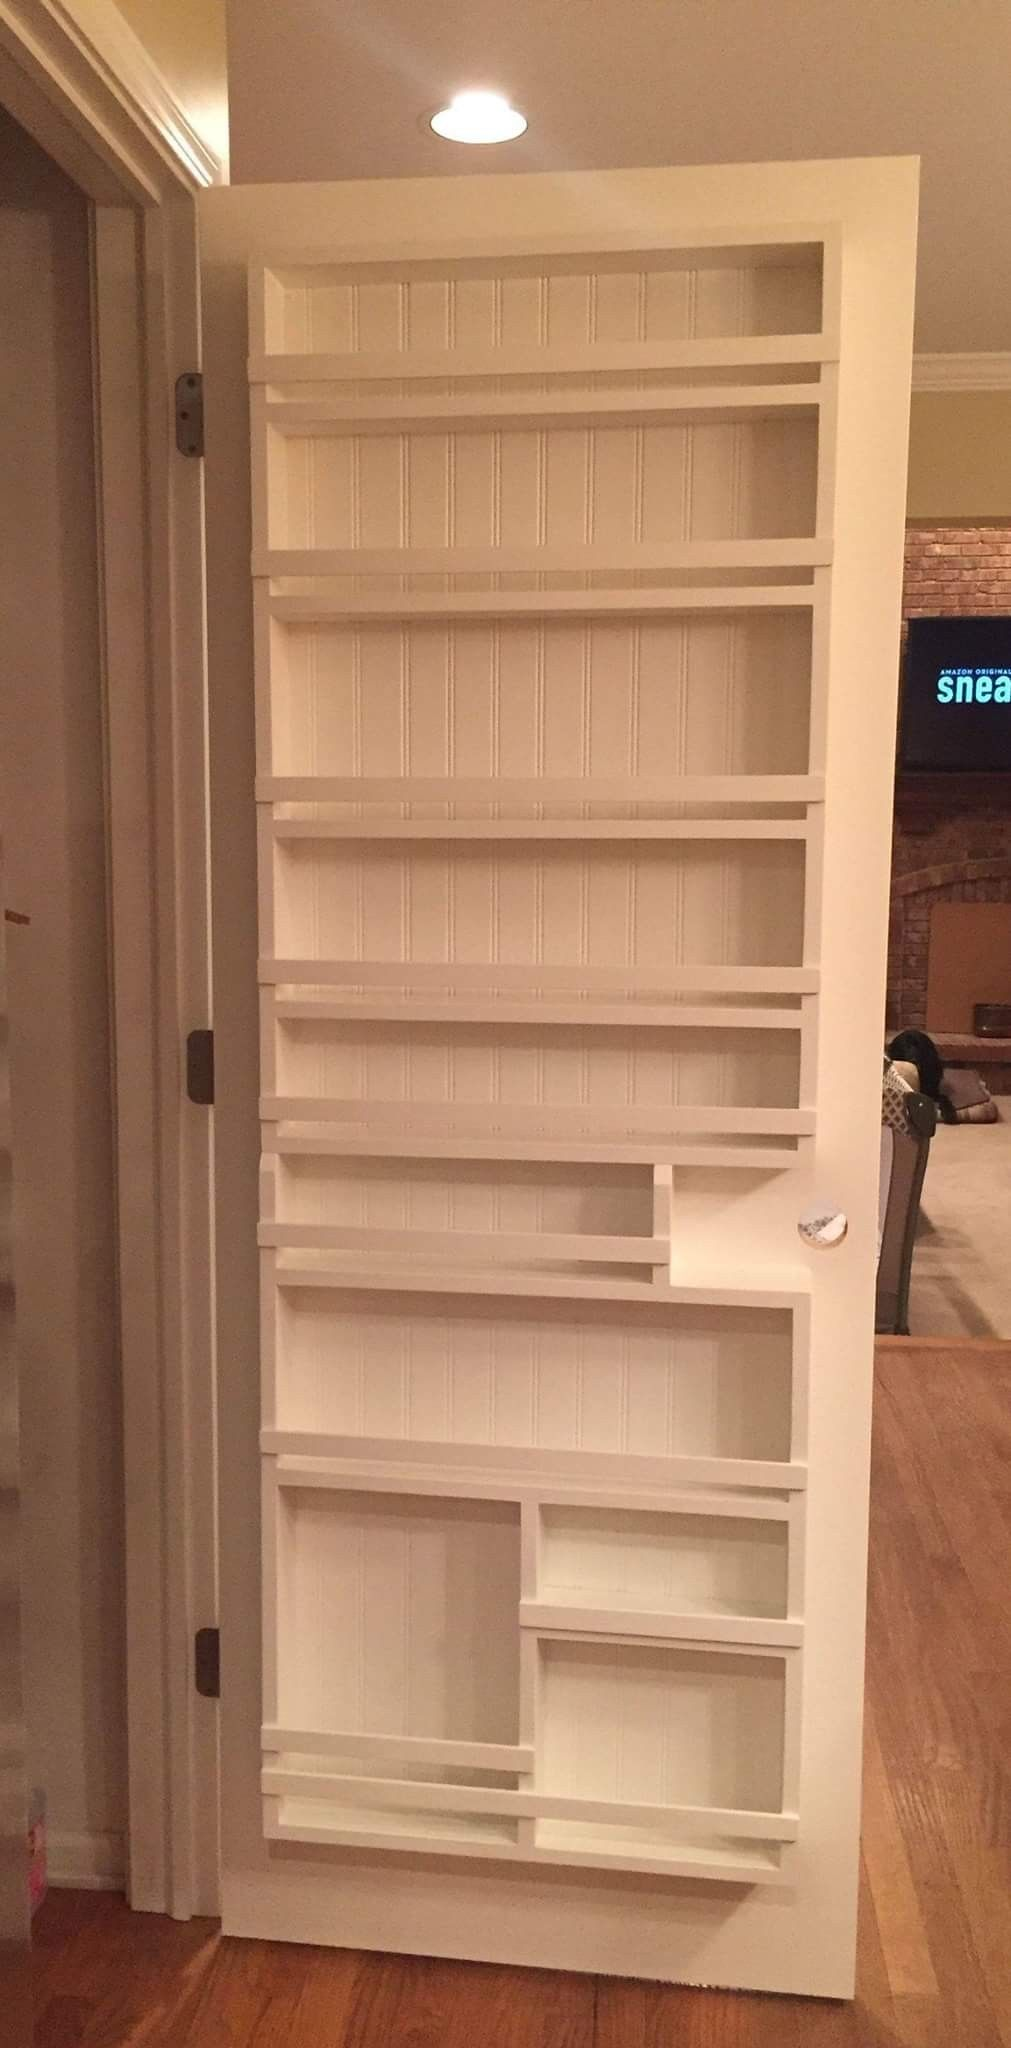 For the left wall going into the basement. #pantryshelving